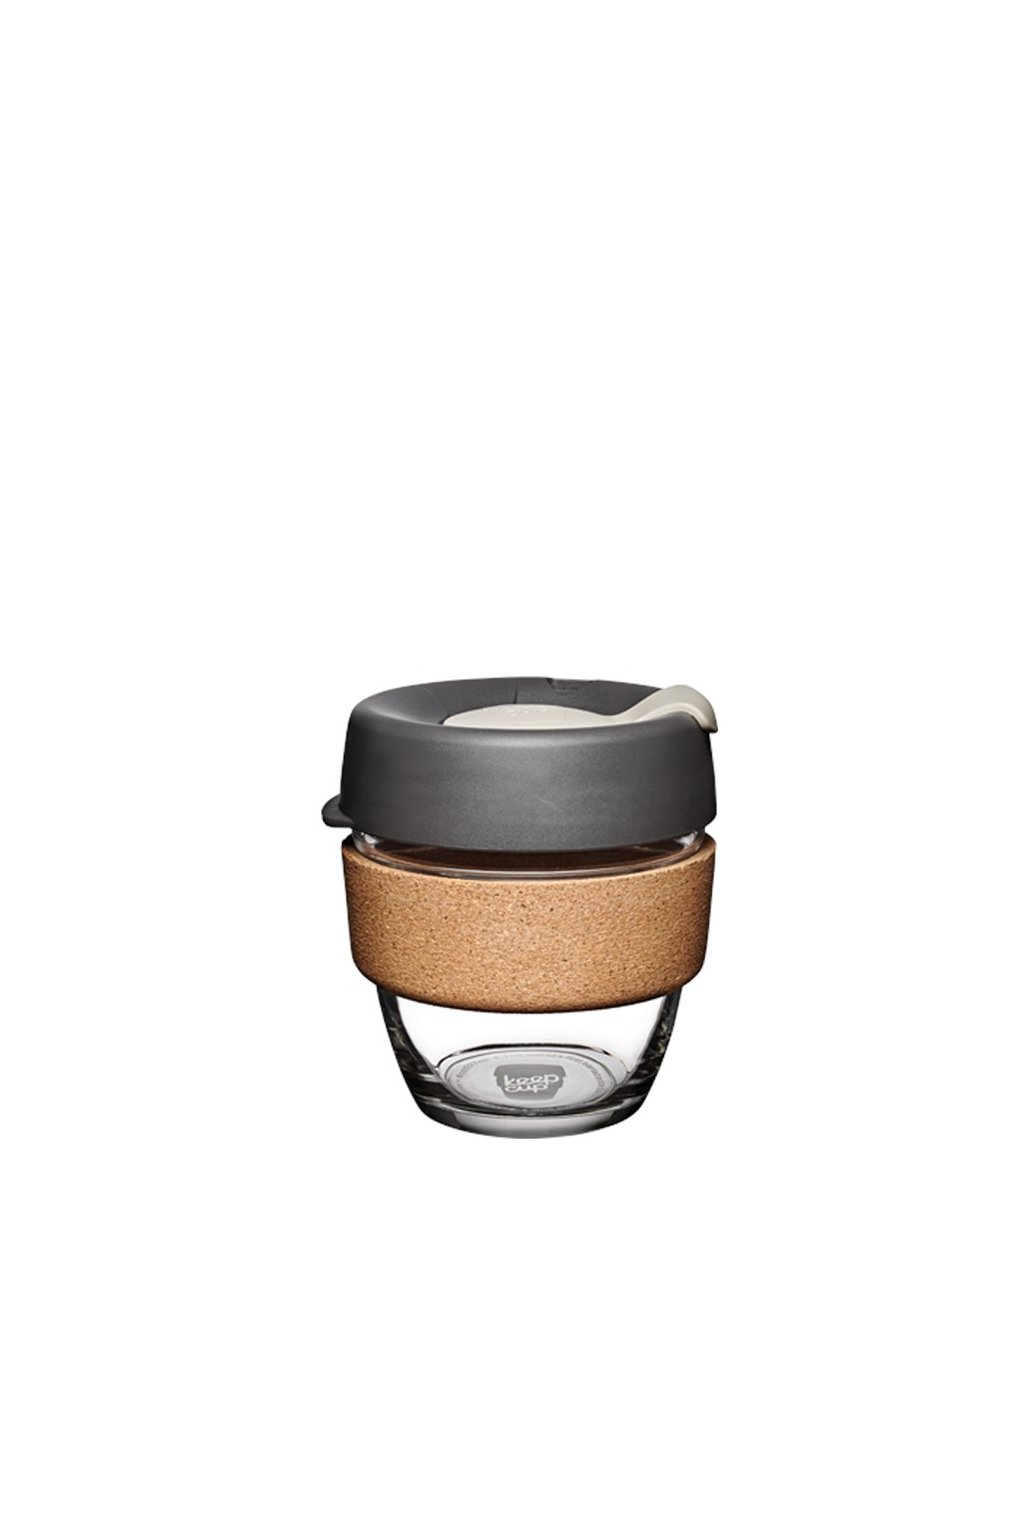 KeepCup Brew Cork PRESS 227 ml